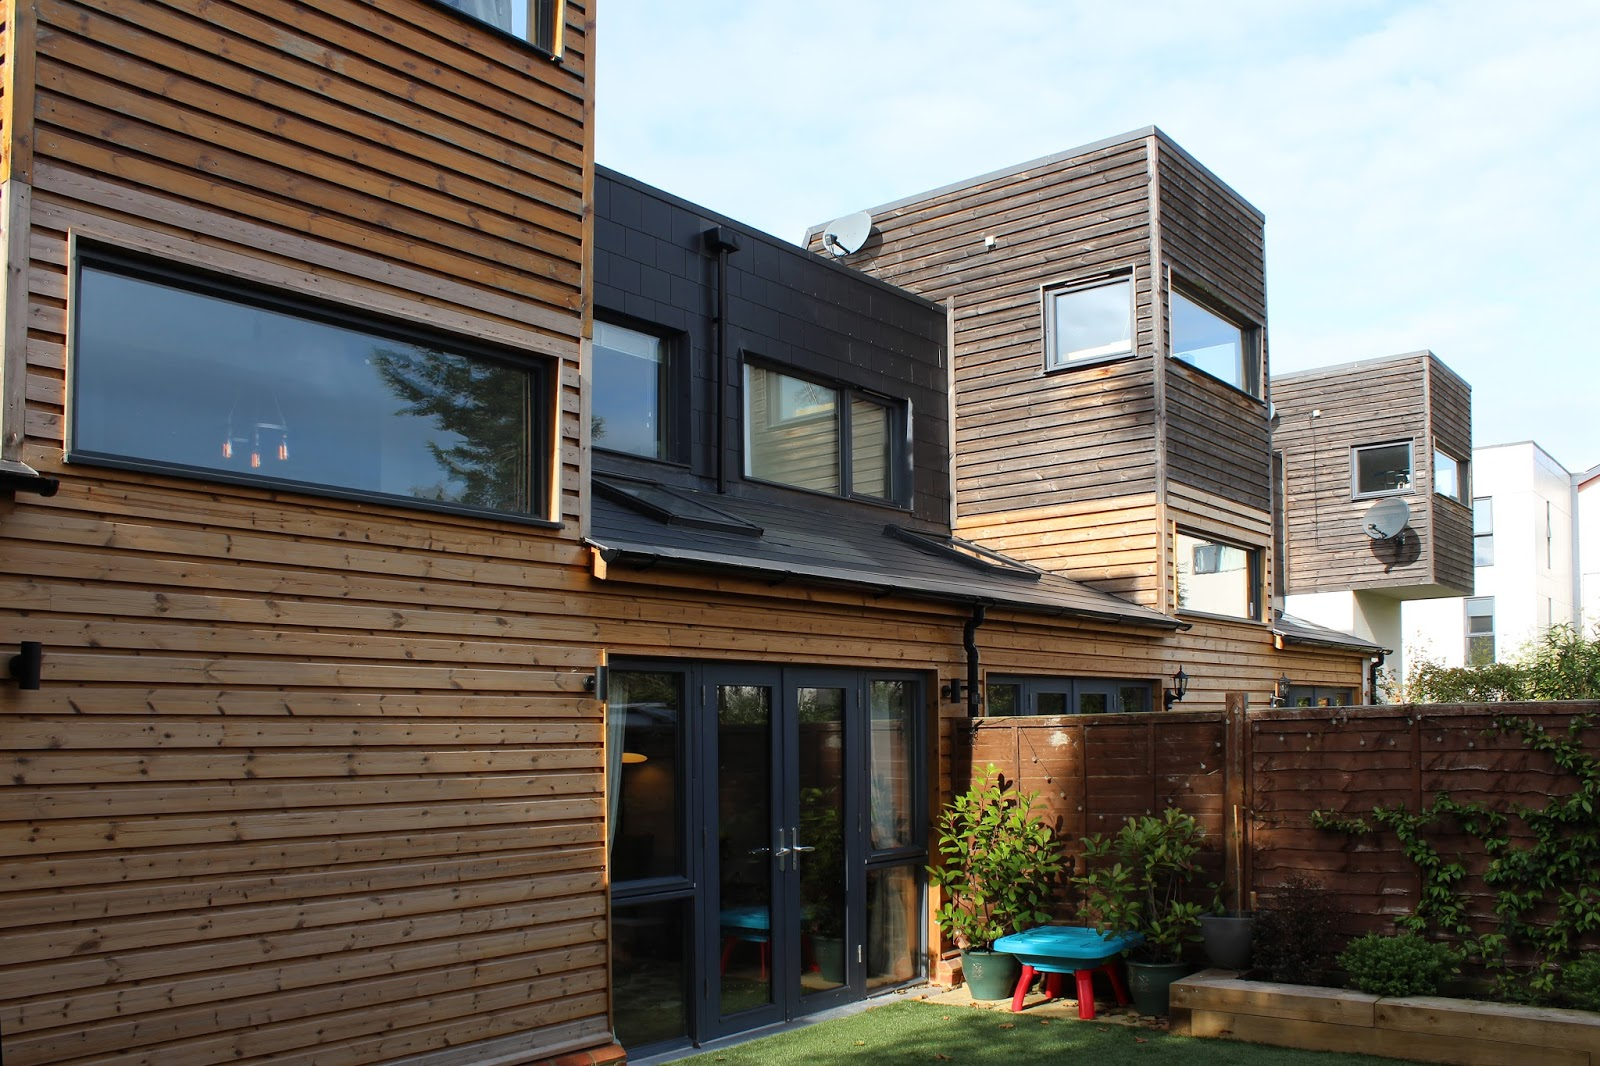 Charming The Estate Is An Acclaimed Example Of Building To High Standards Of  Environmental Sustainability. As An Extension ...